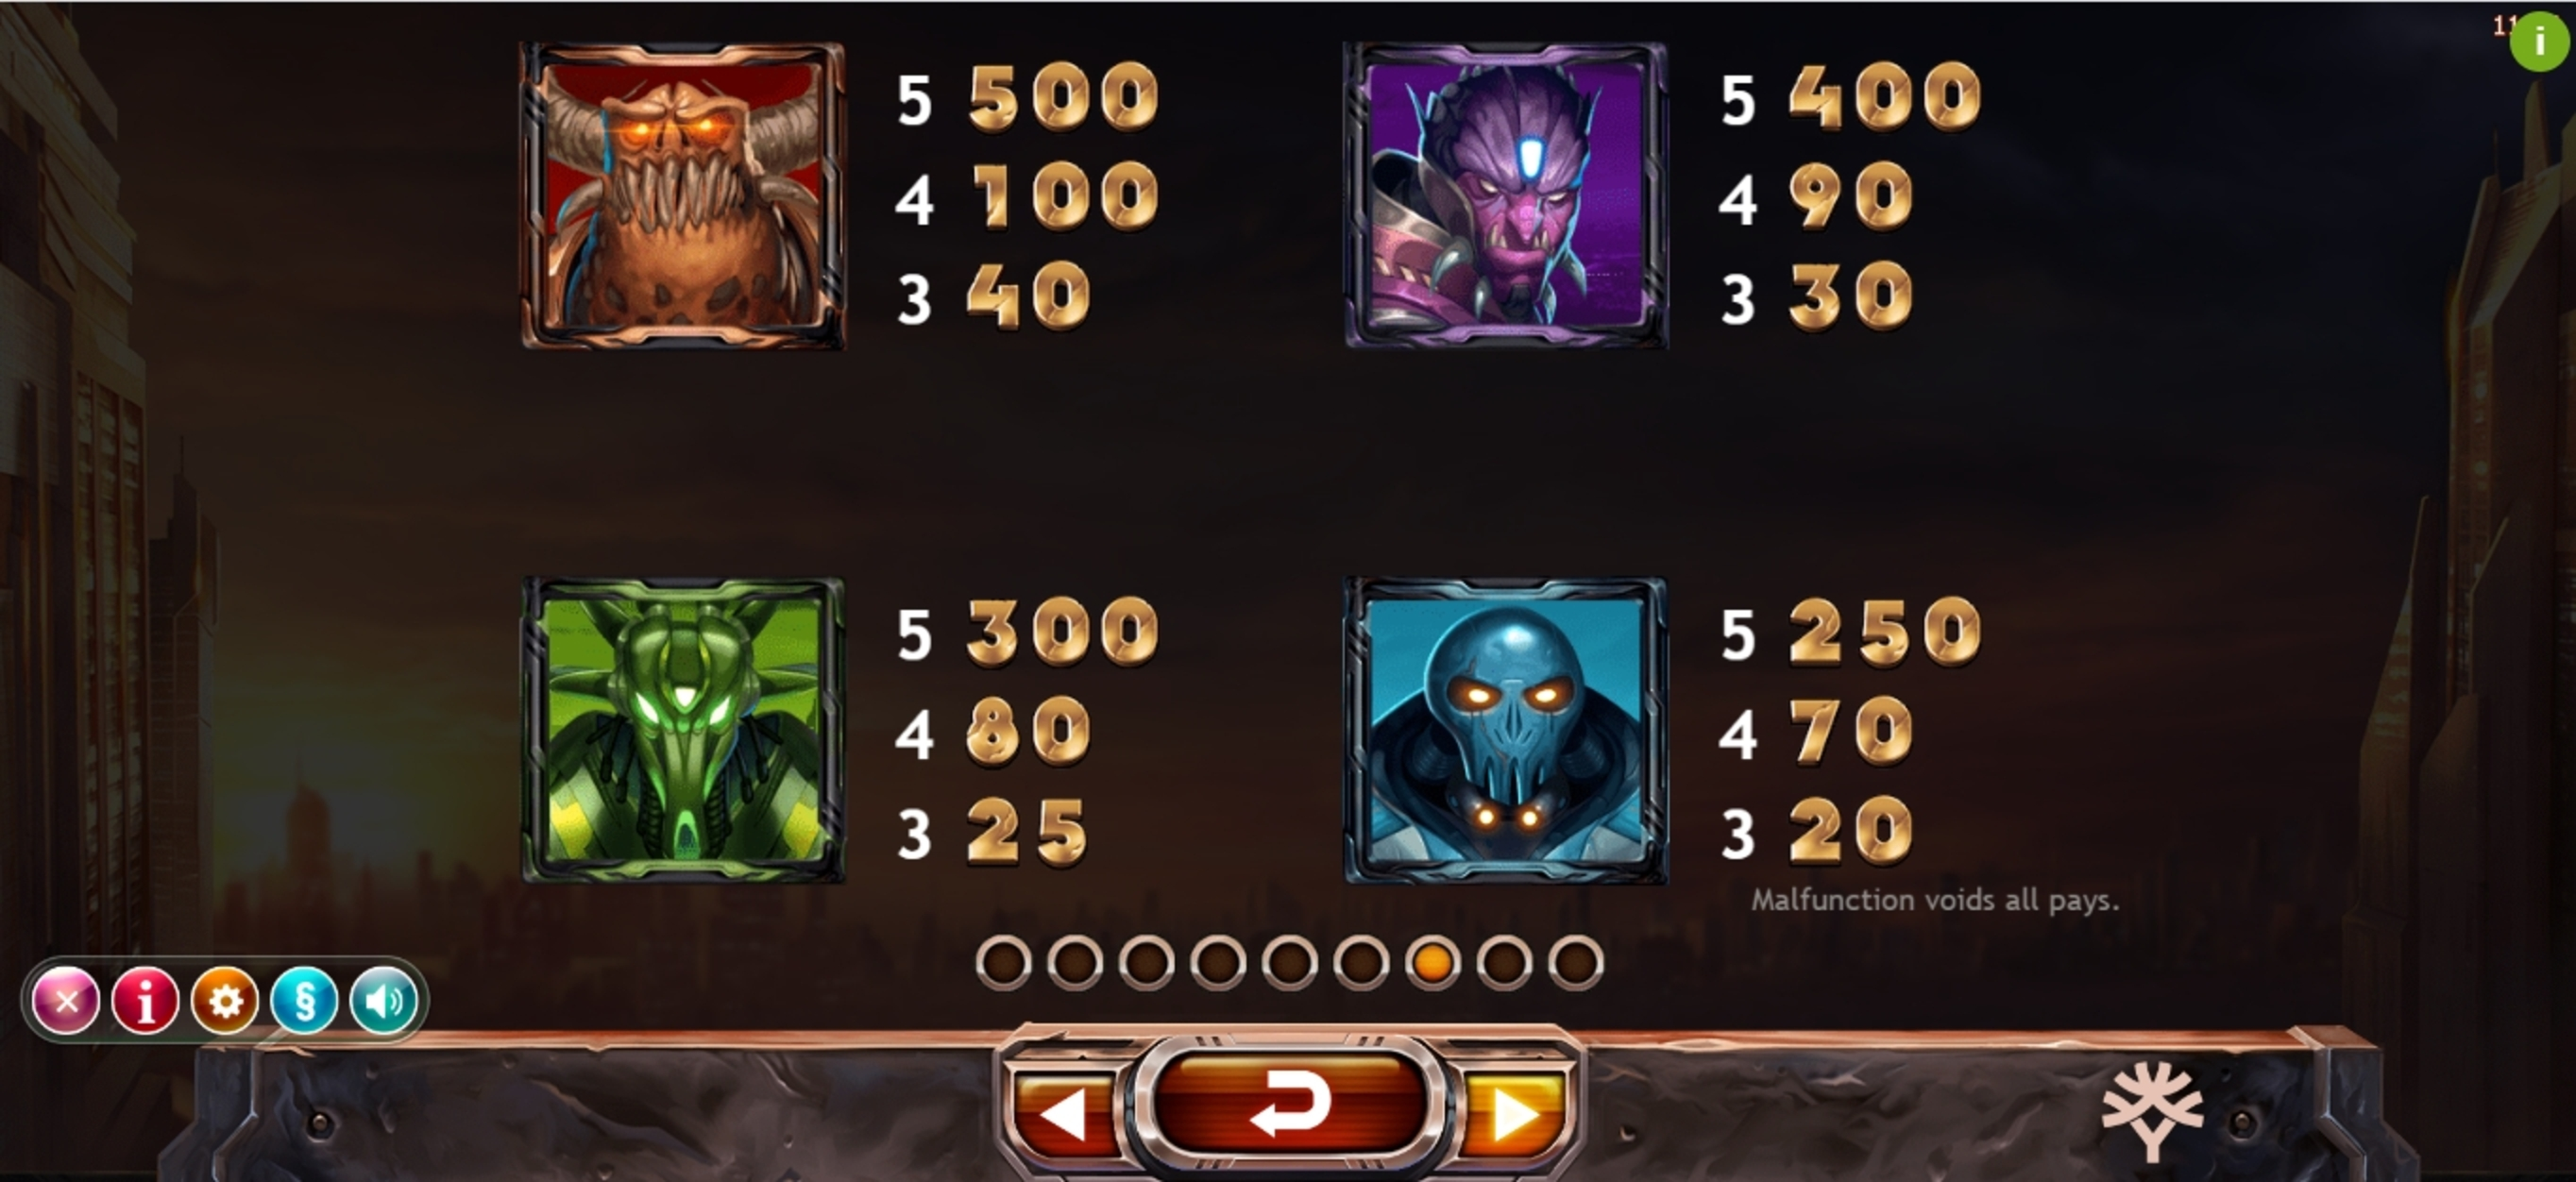 Info of Super Heroes Slot Game by Yggdrasil